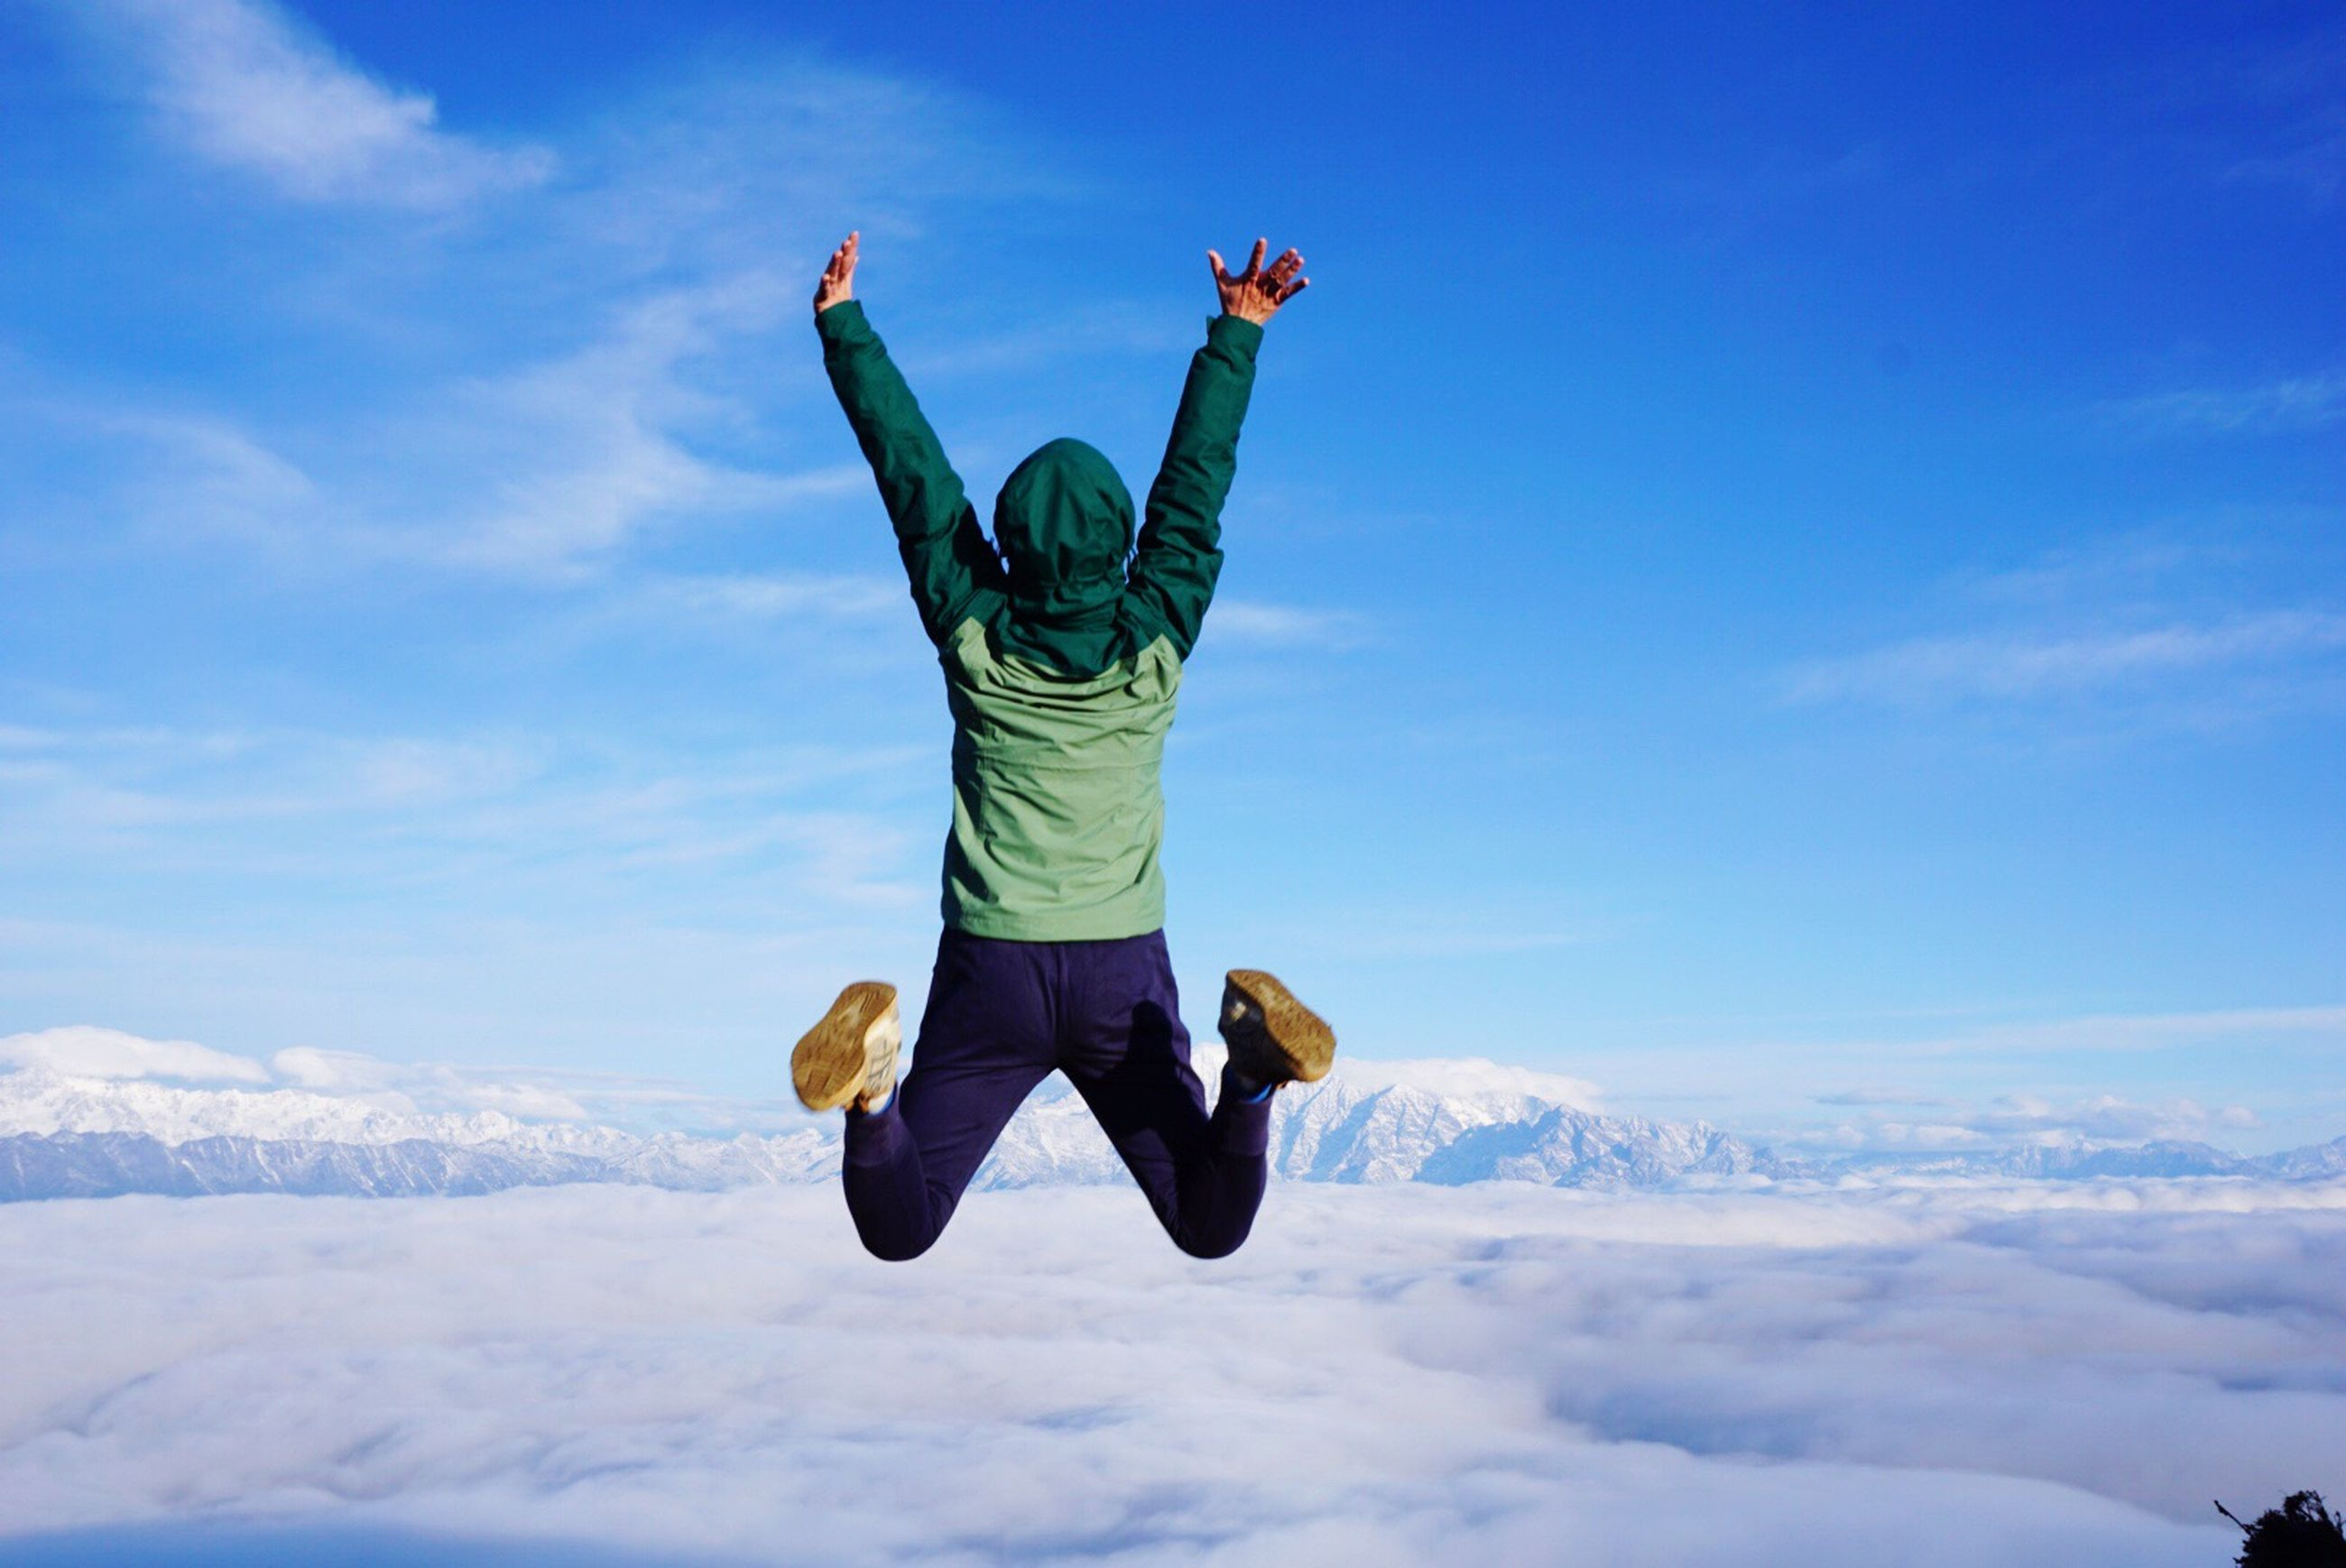 full length, lifestyles, leisure activity, mid-air, arms outstretched, freedom, sky, jumping, casual clothing, winter, blue, fun, snow, extreme sports, person, enjoyment, adventure, warm clothing